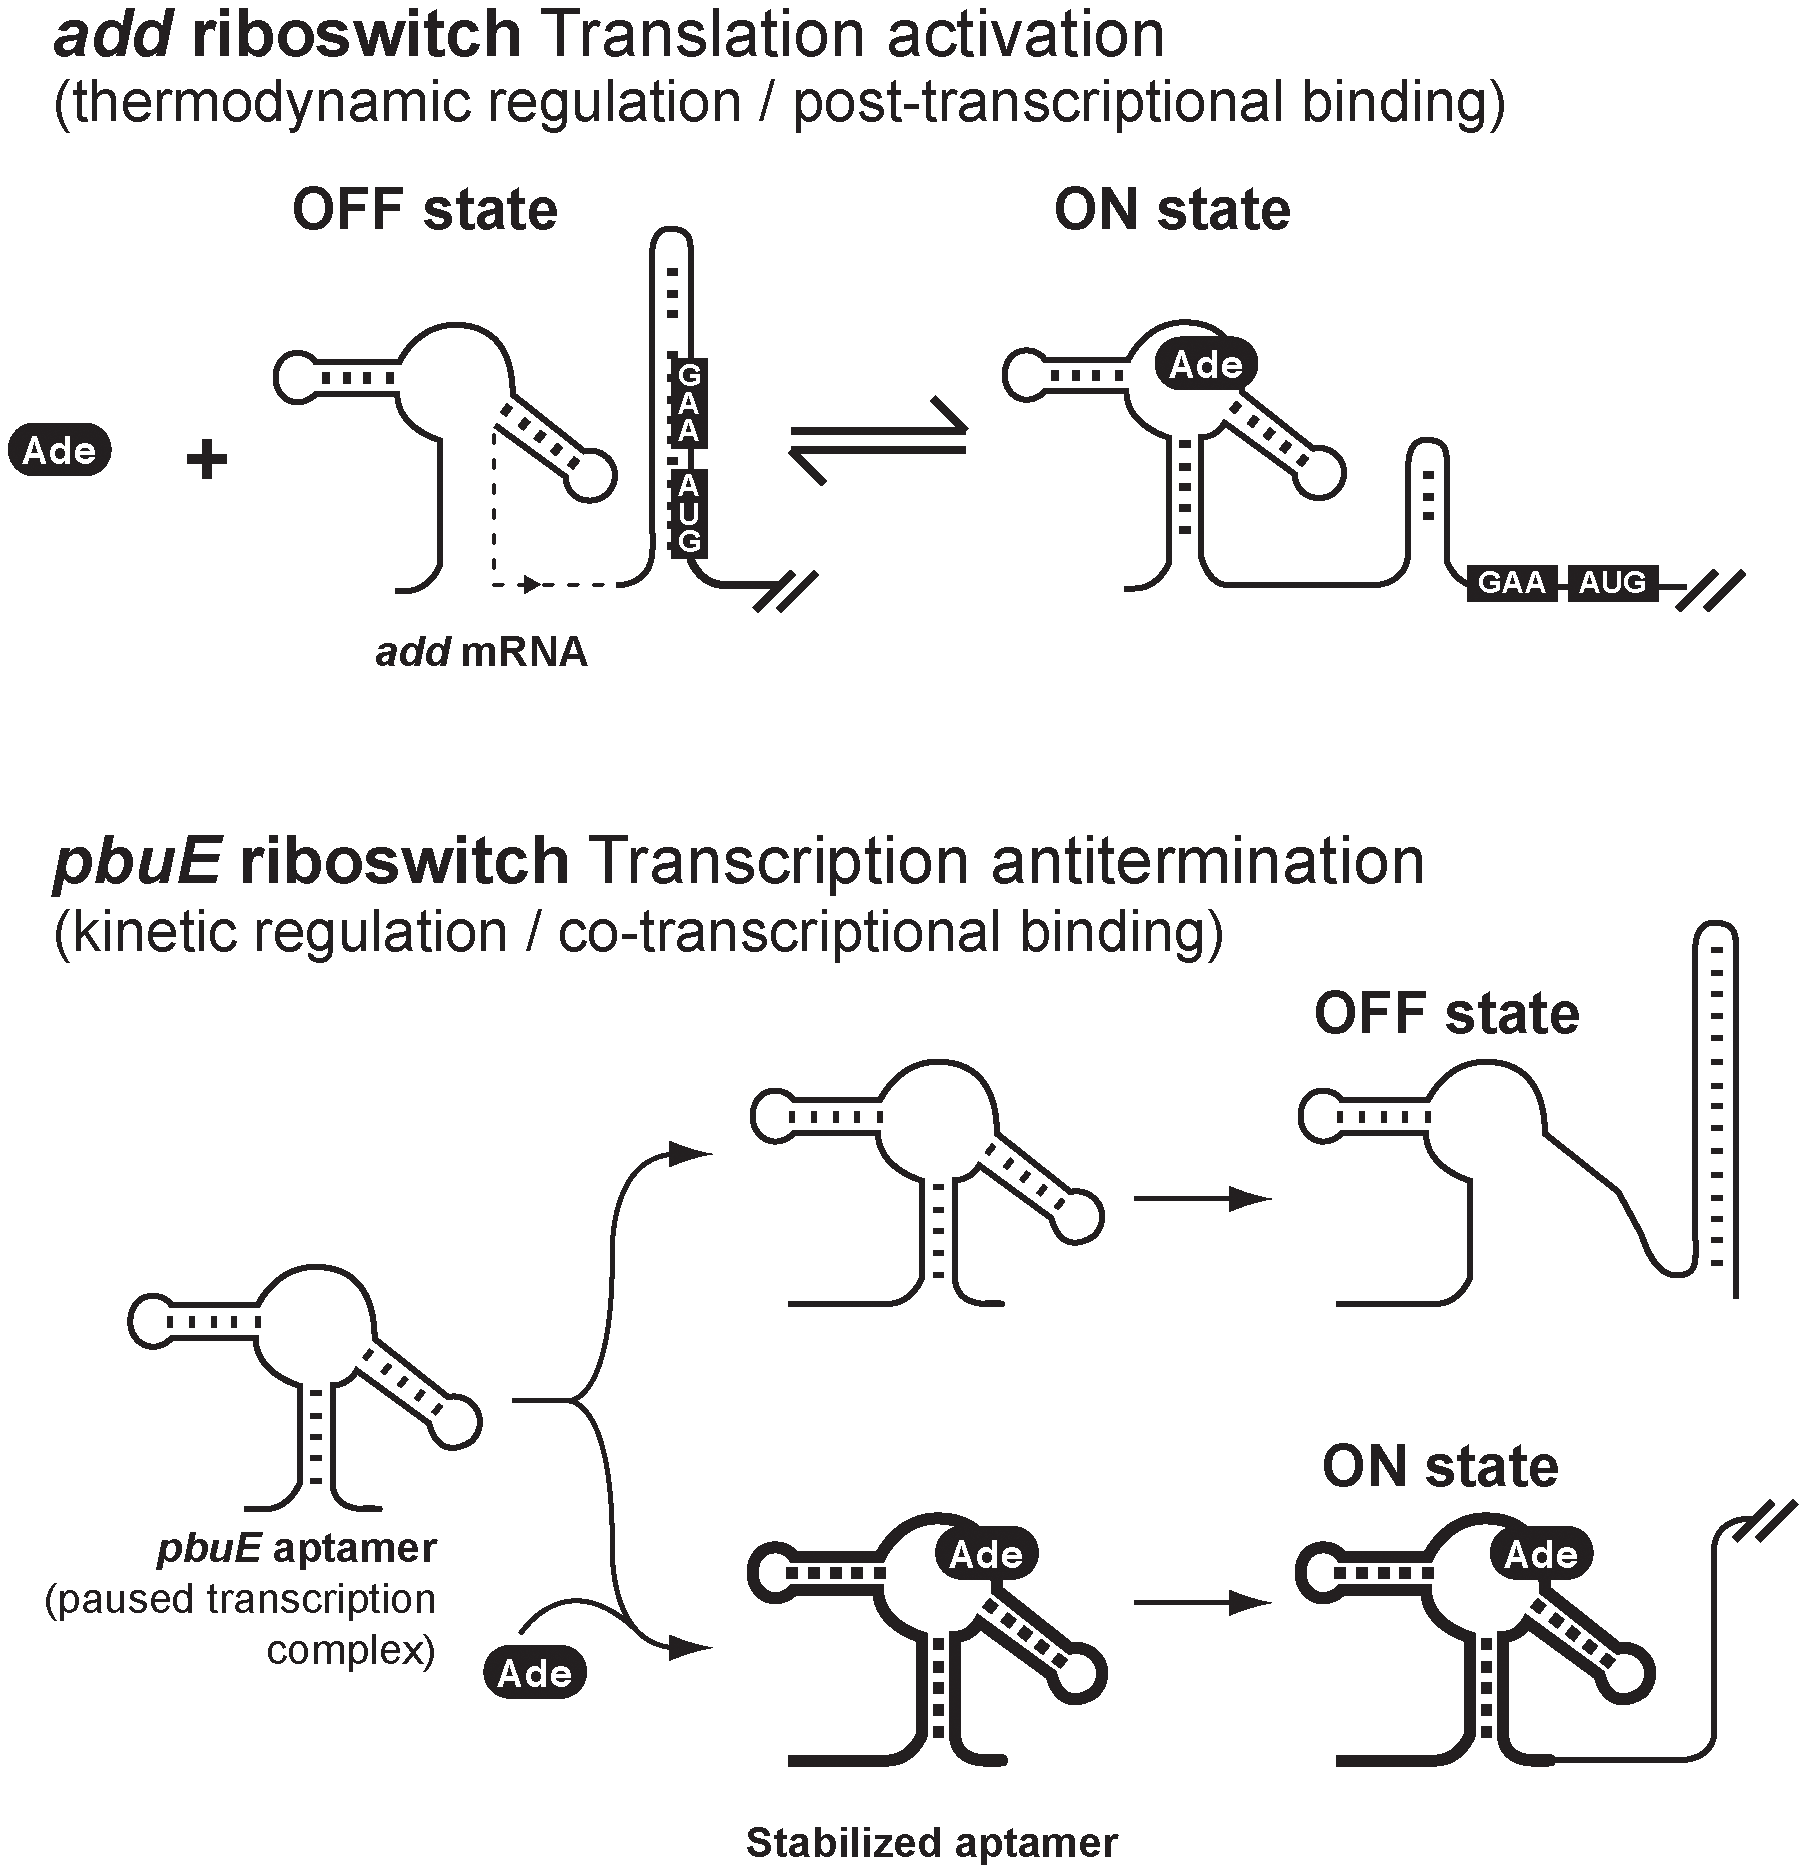 Schematic showing proposed regulation mechanisms for <i>add</i> and <i>pbuE</i> adenine riboswitches.